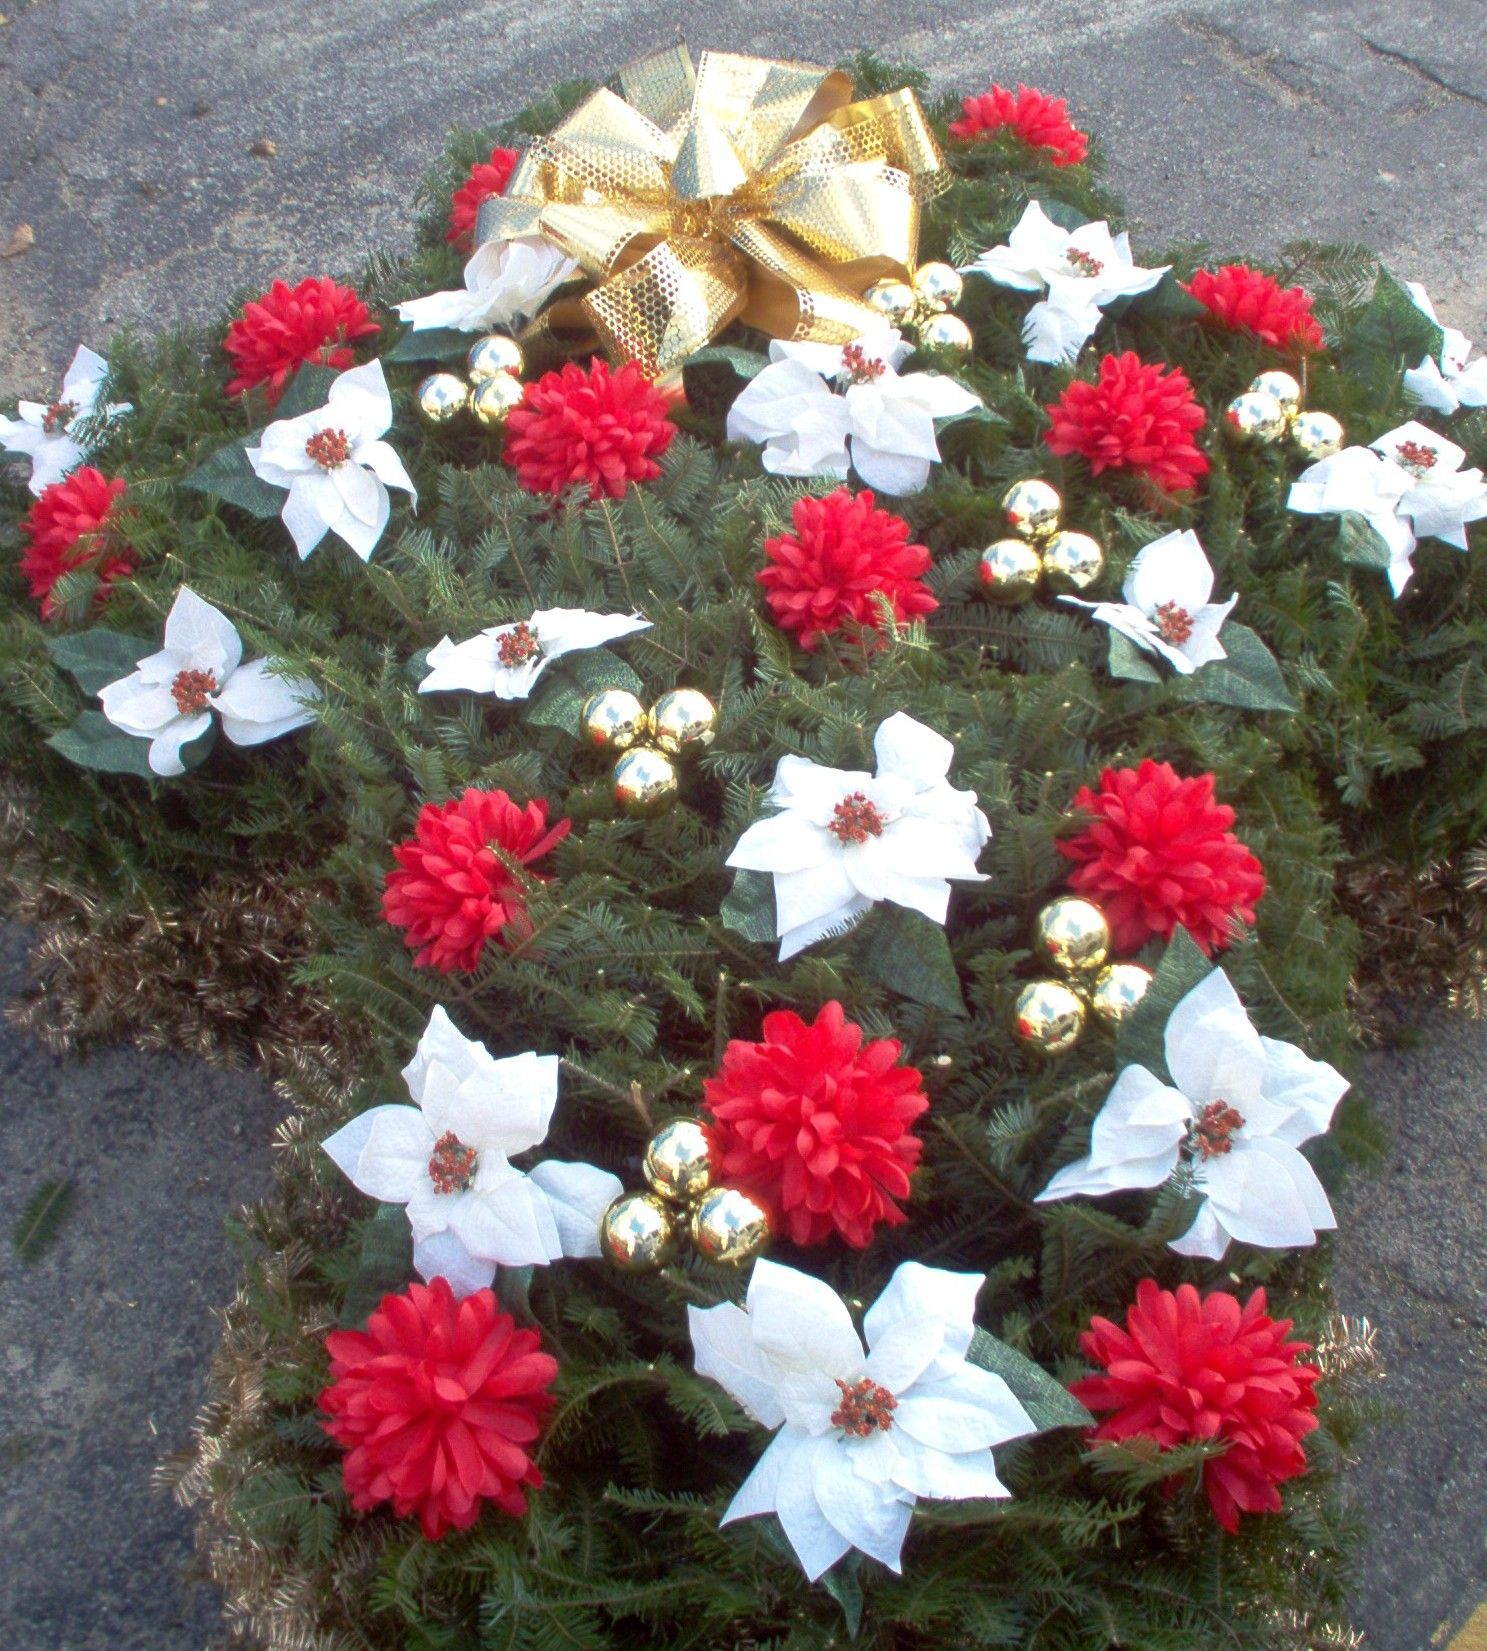 Diy Christmas Grave Decorations: Monument Saddles, Vase, Grave